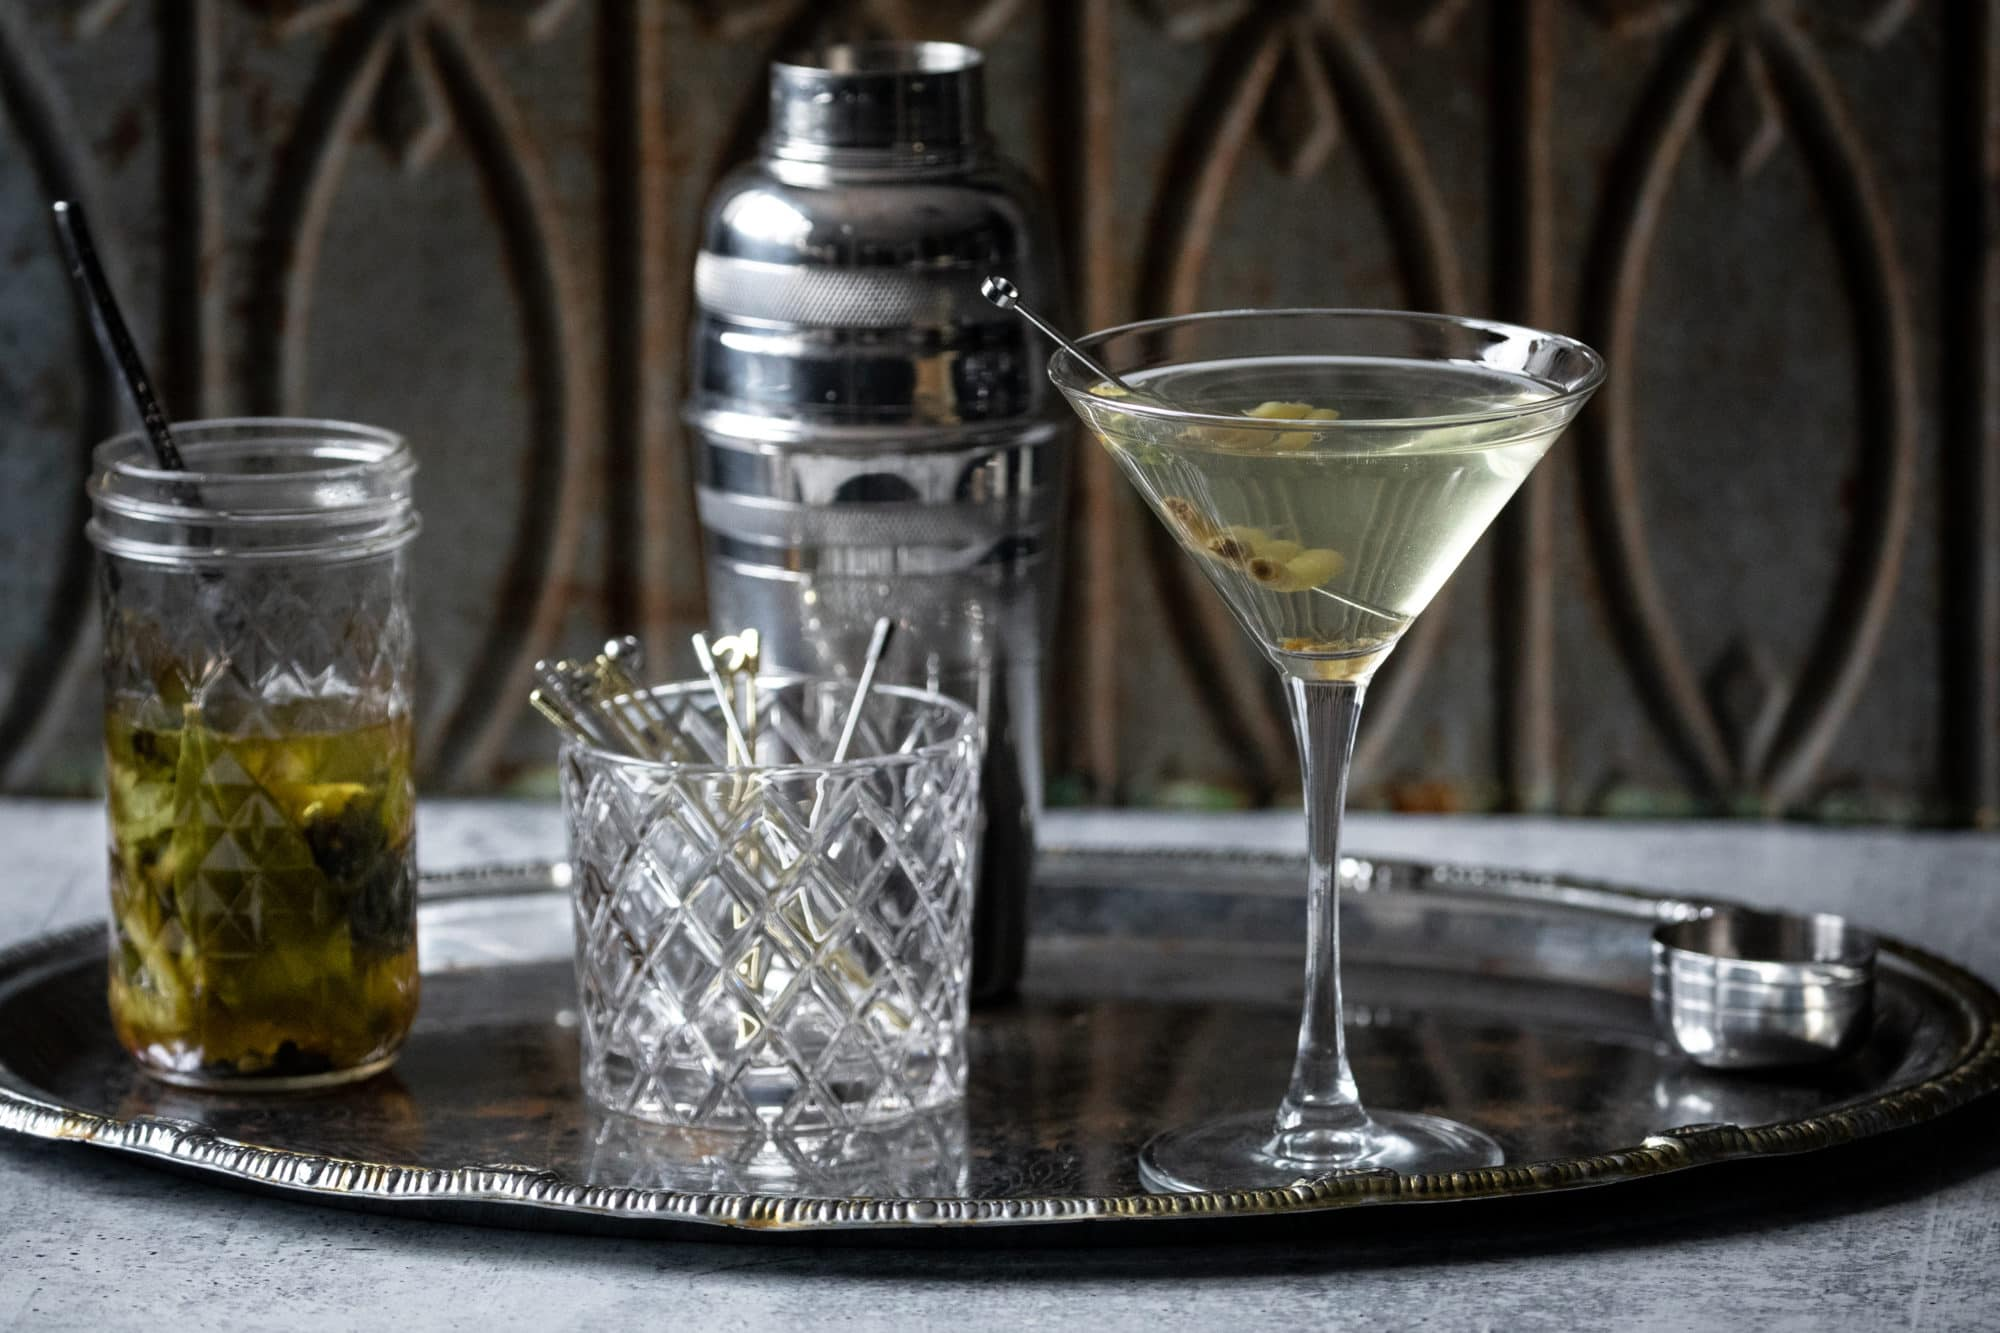 Photo of a ramp gibson on a table with a cocktail shaker, vodka and pickled ramps.